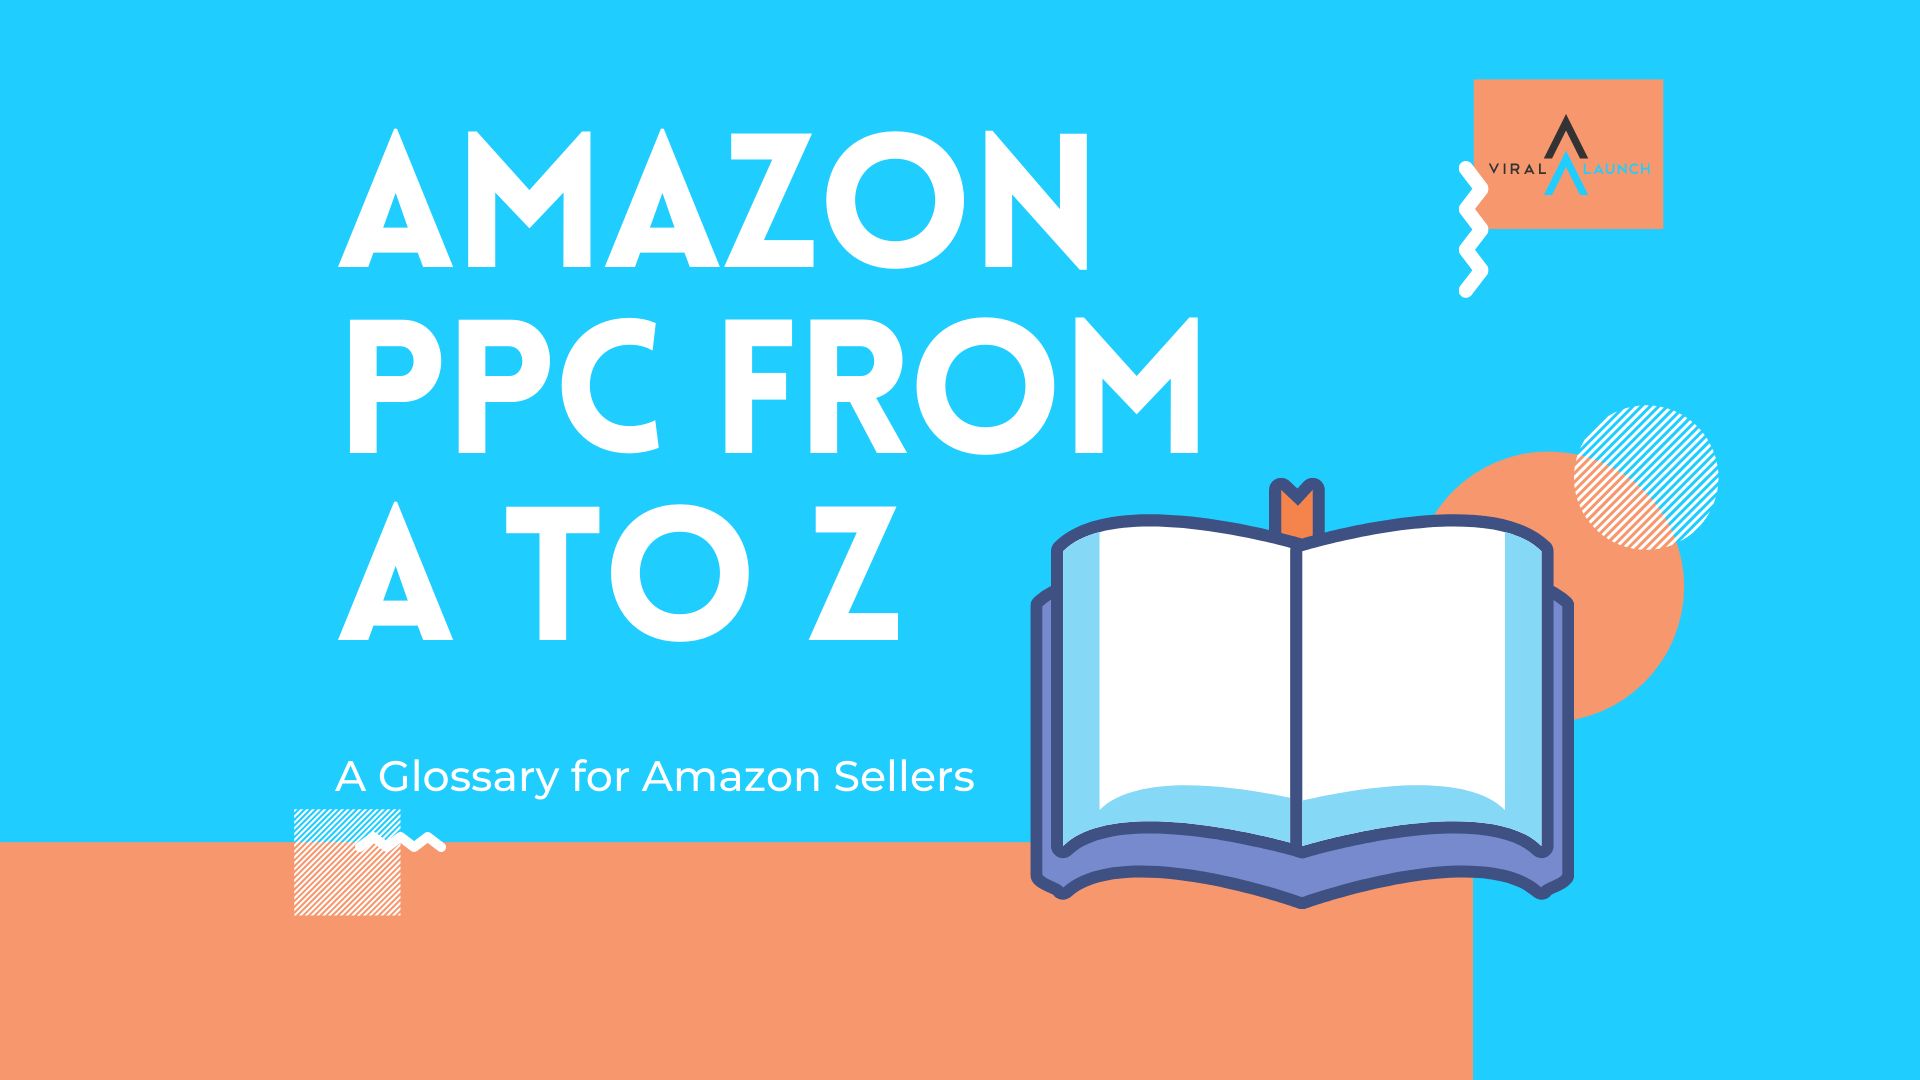 amazon ppc from a to z